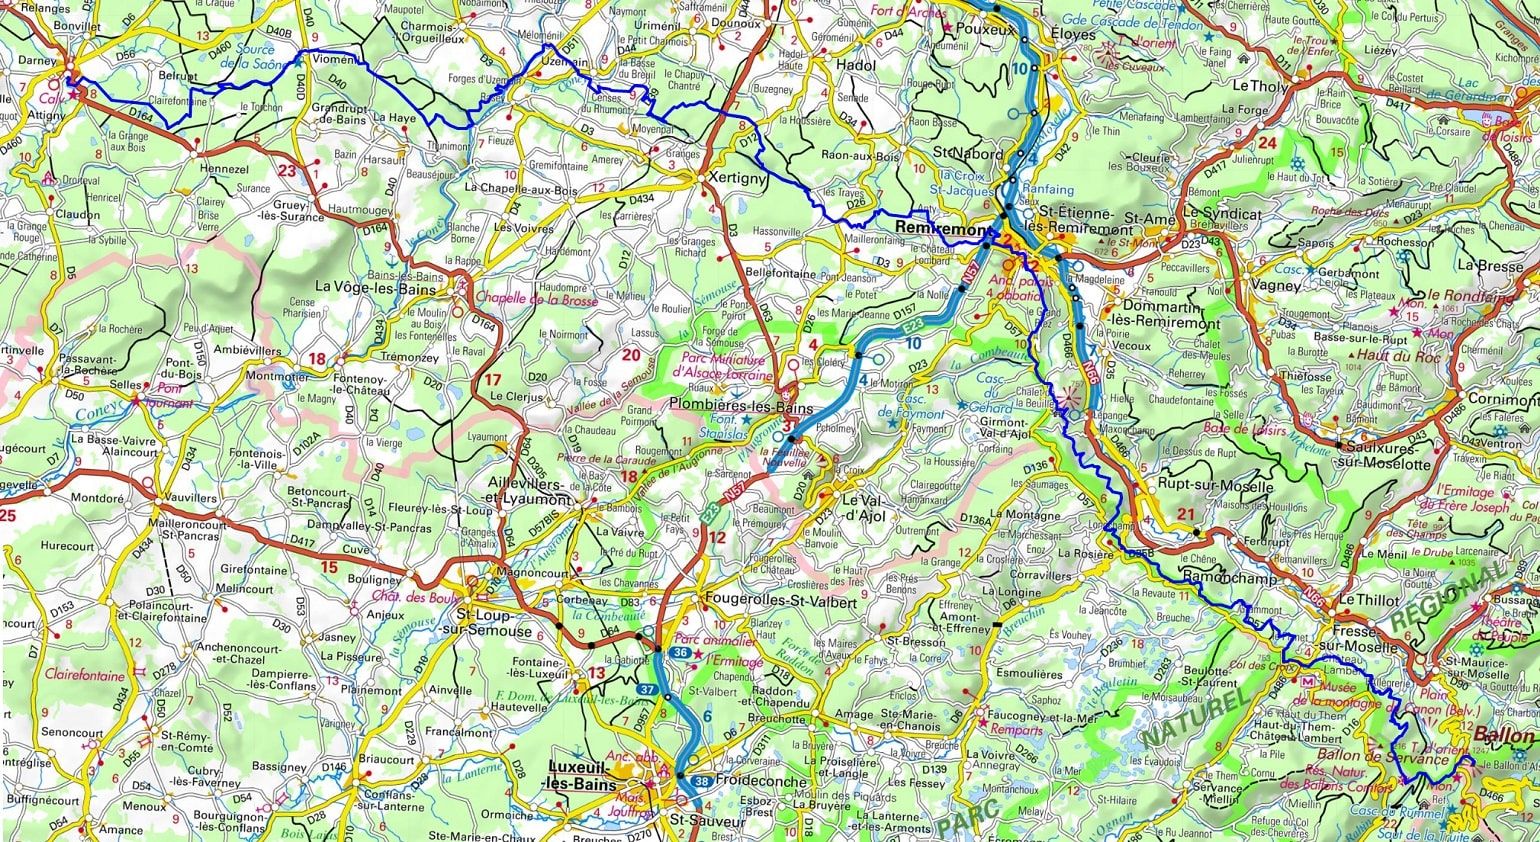 GR7 Hiking from Ballon d'Alsace to Darney (Vosges) 1